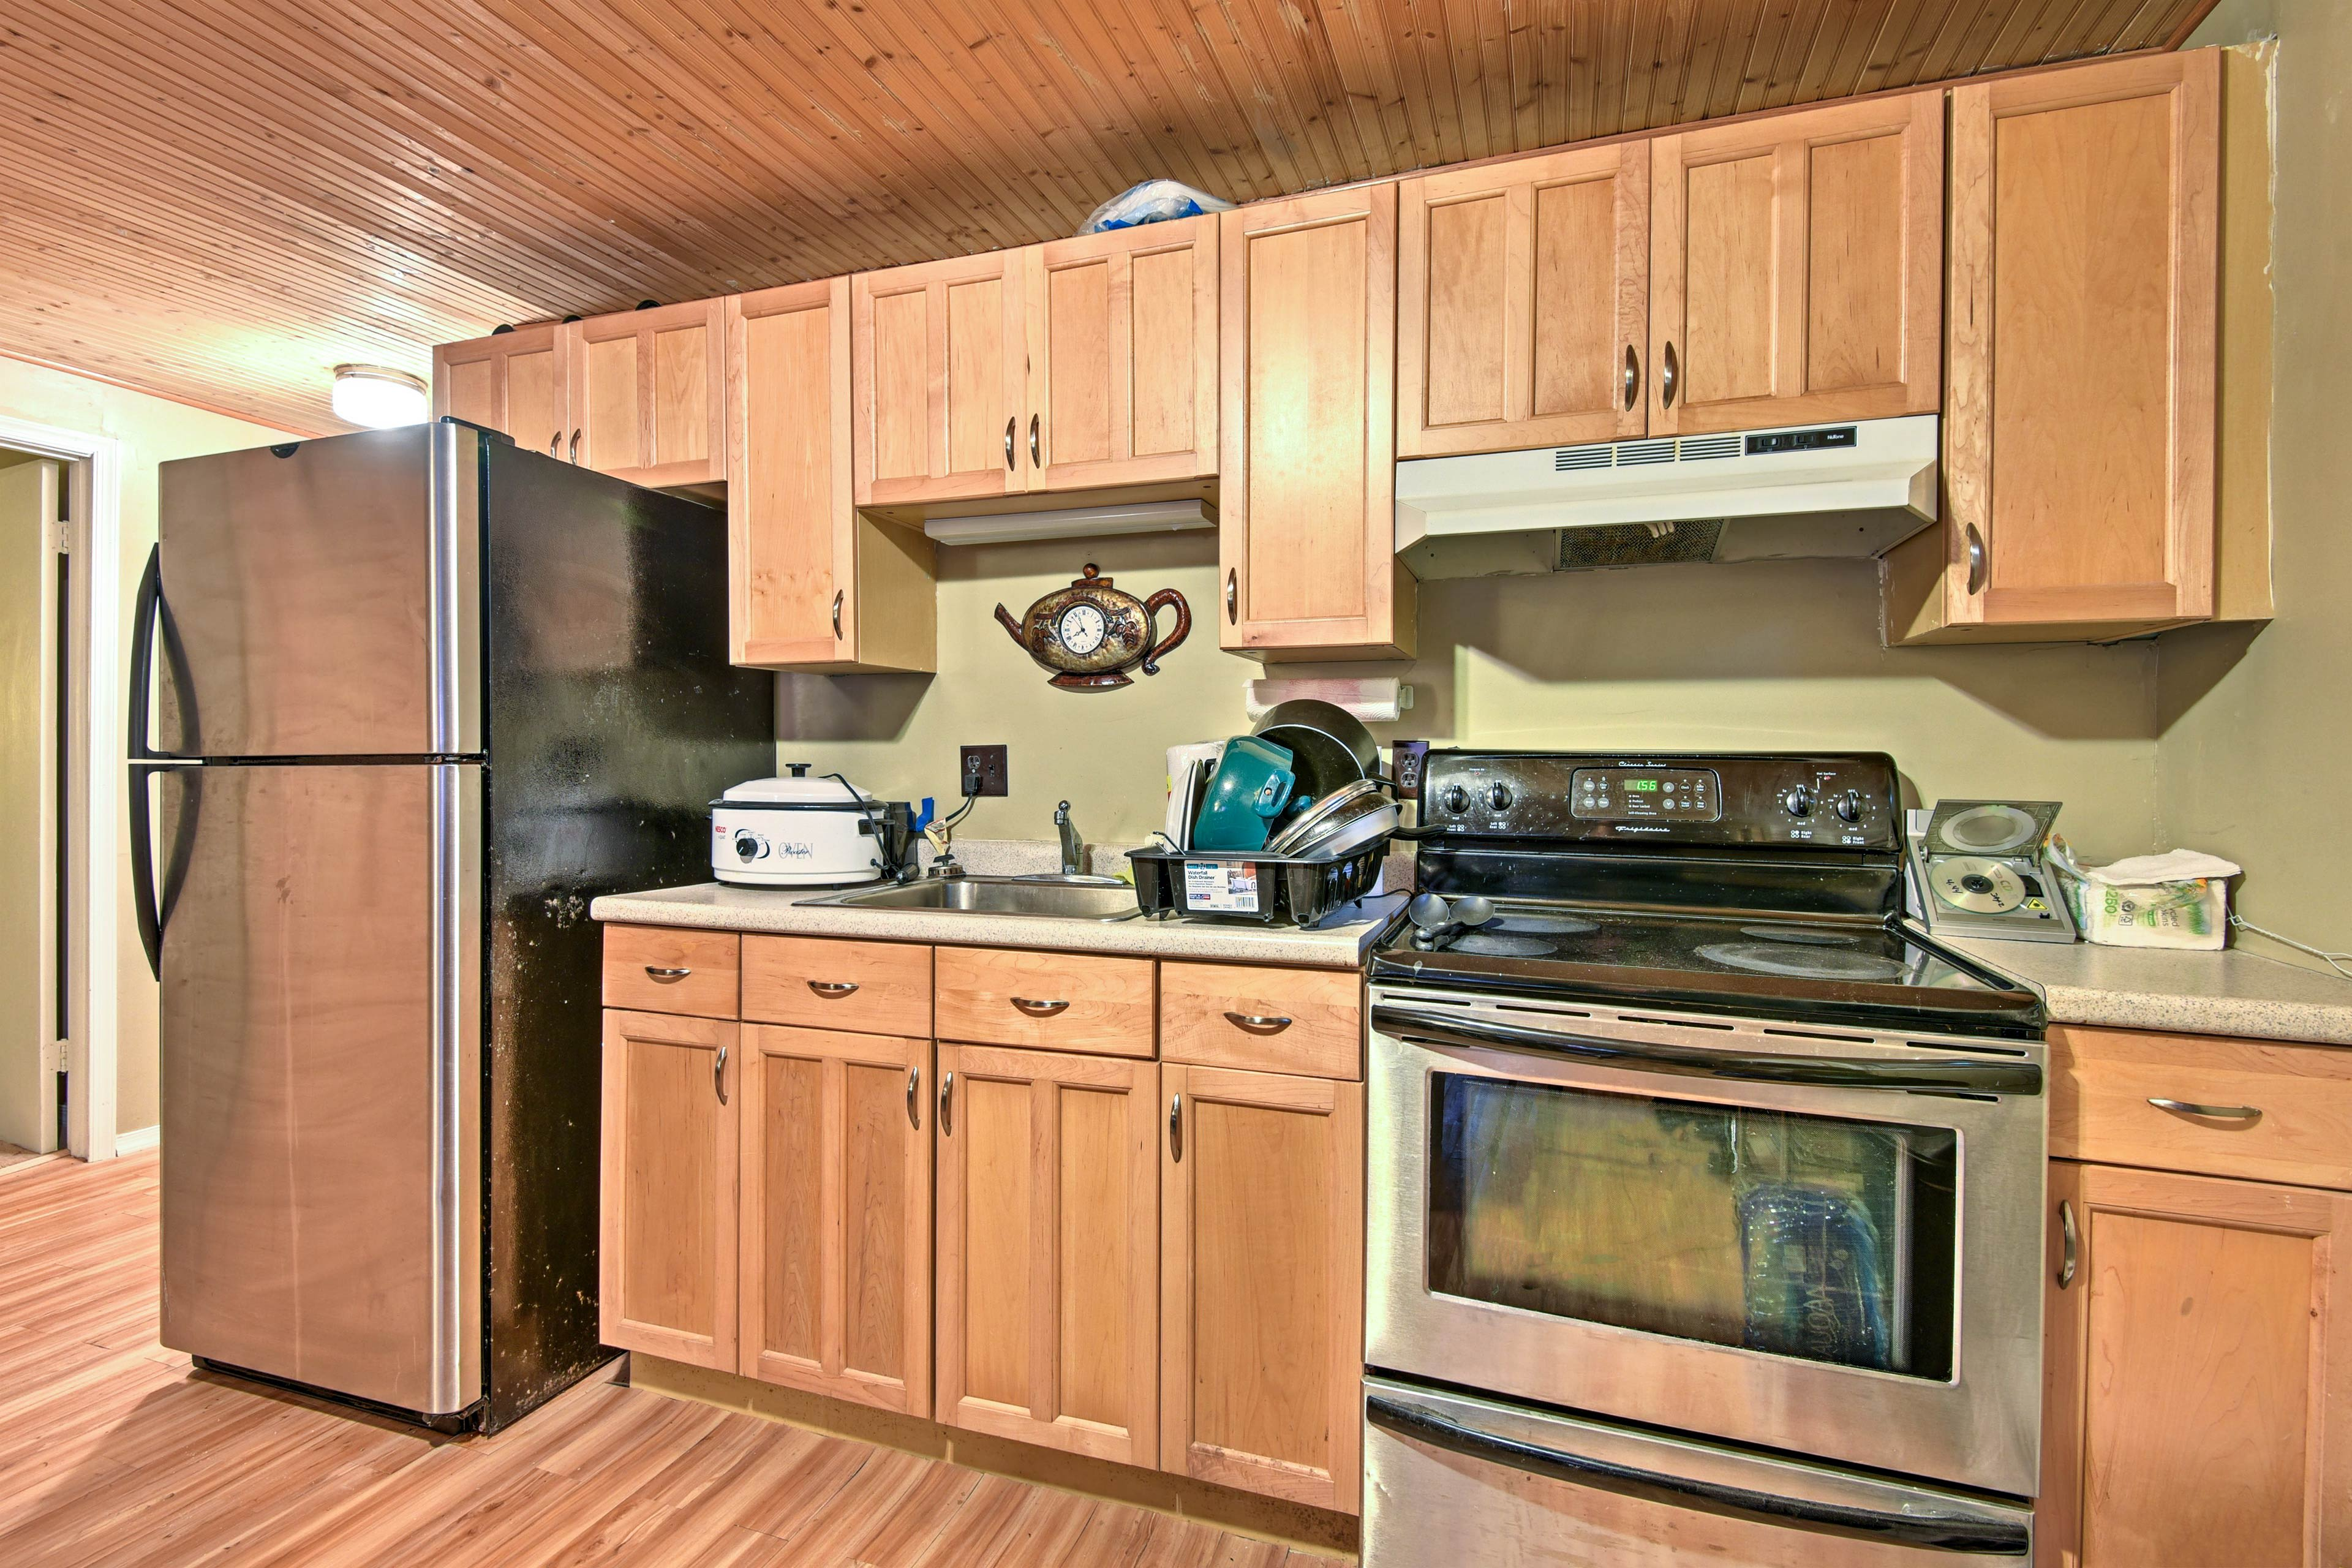 Essential appliances and cookware make home-cooking easy while on vacation.